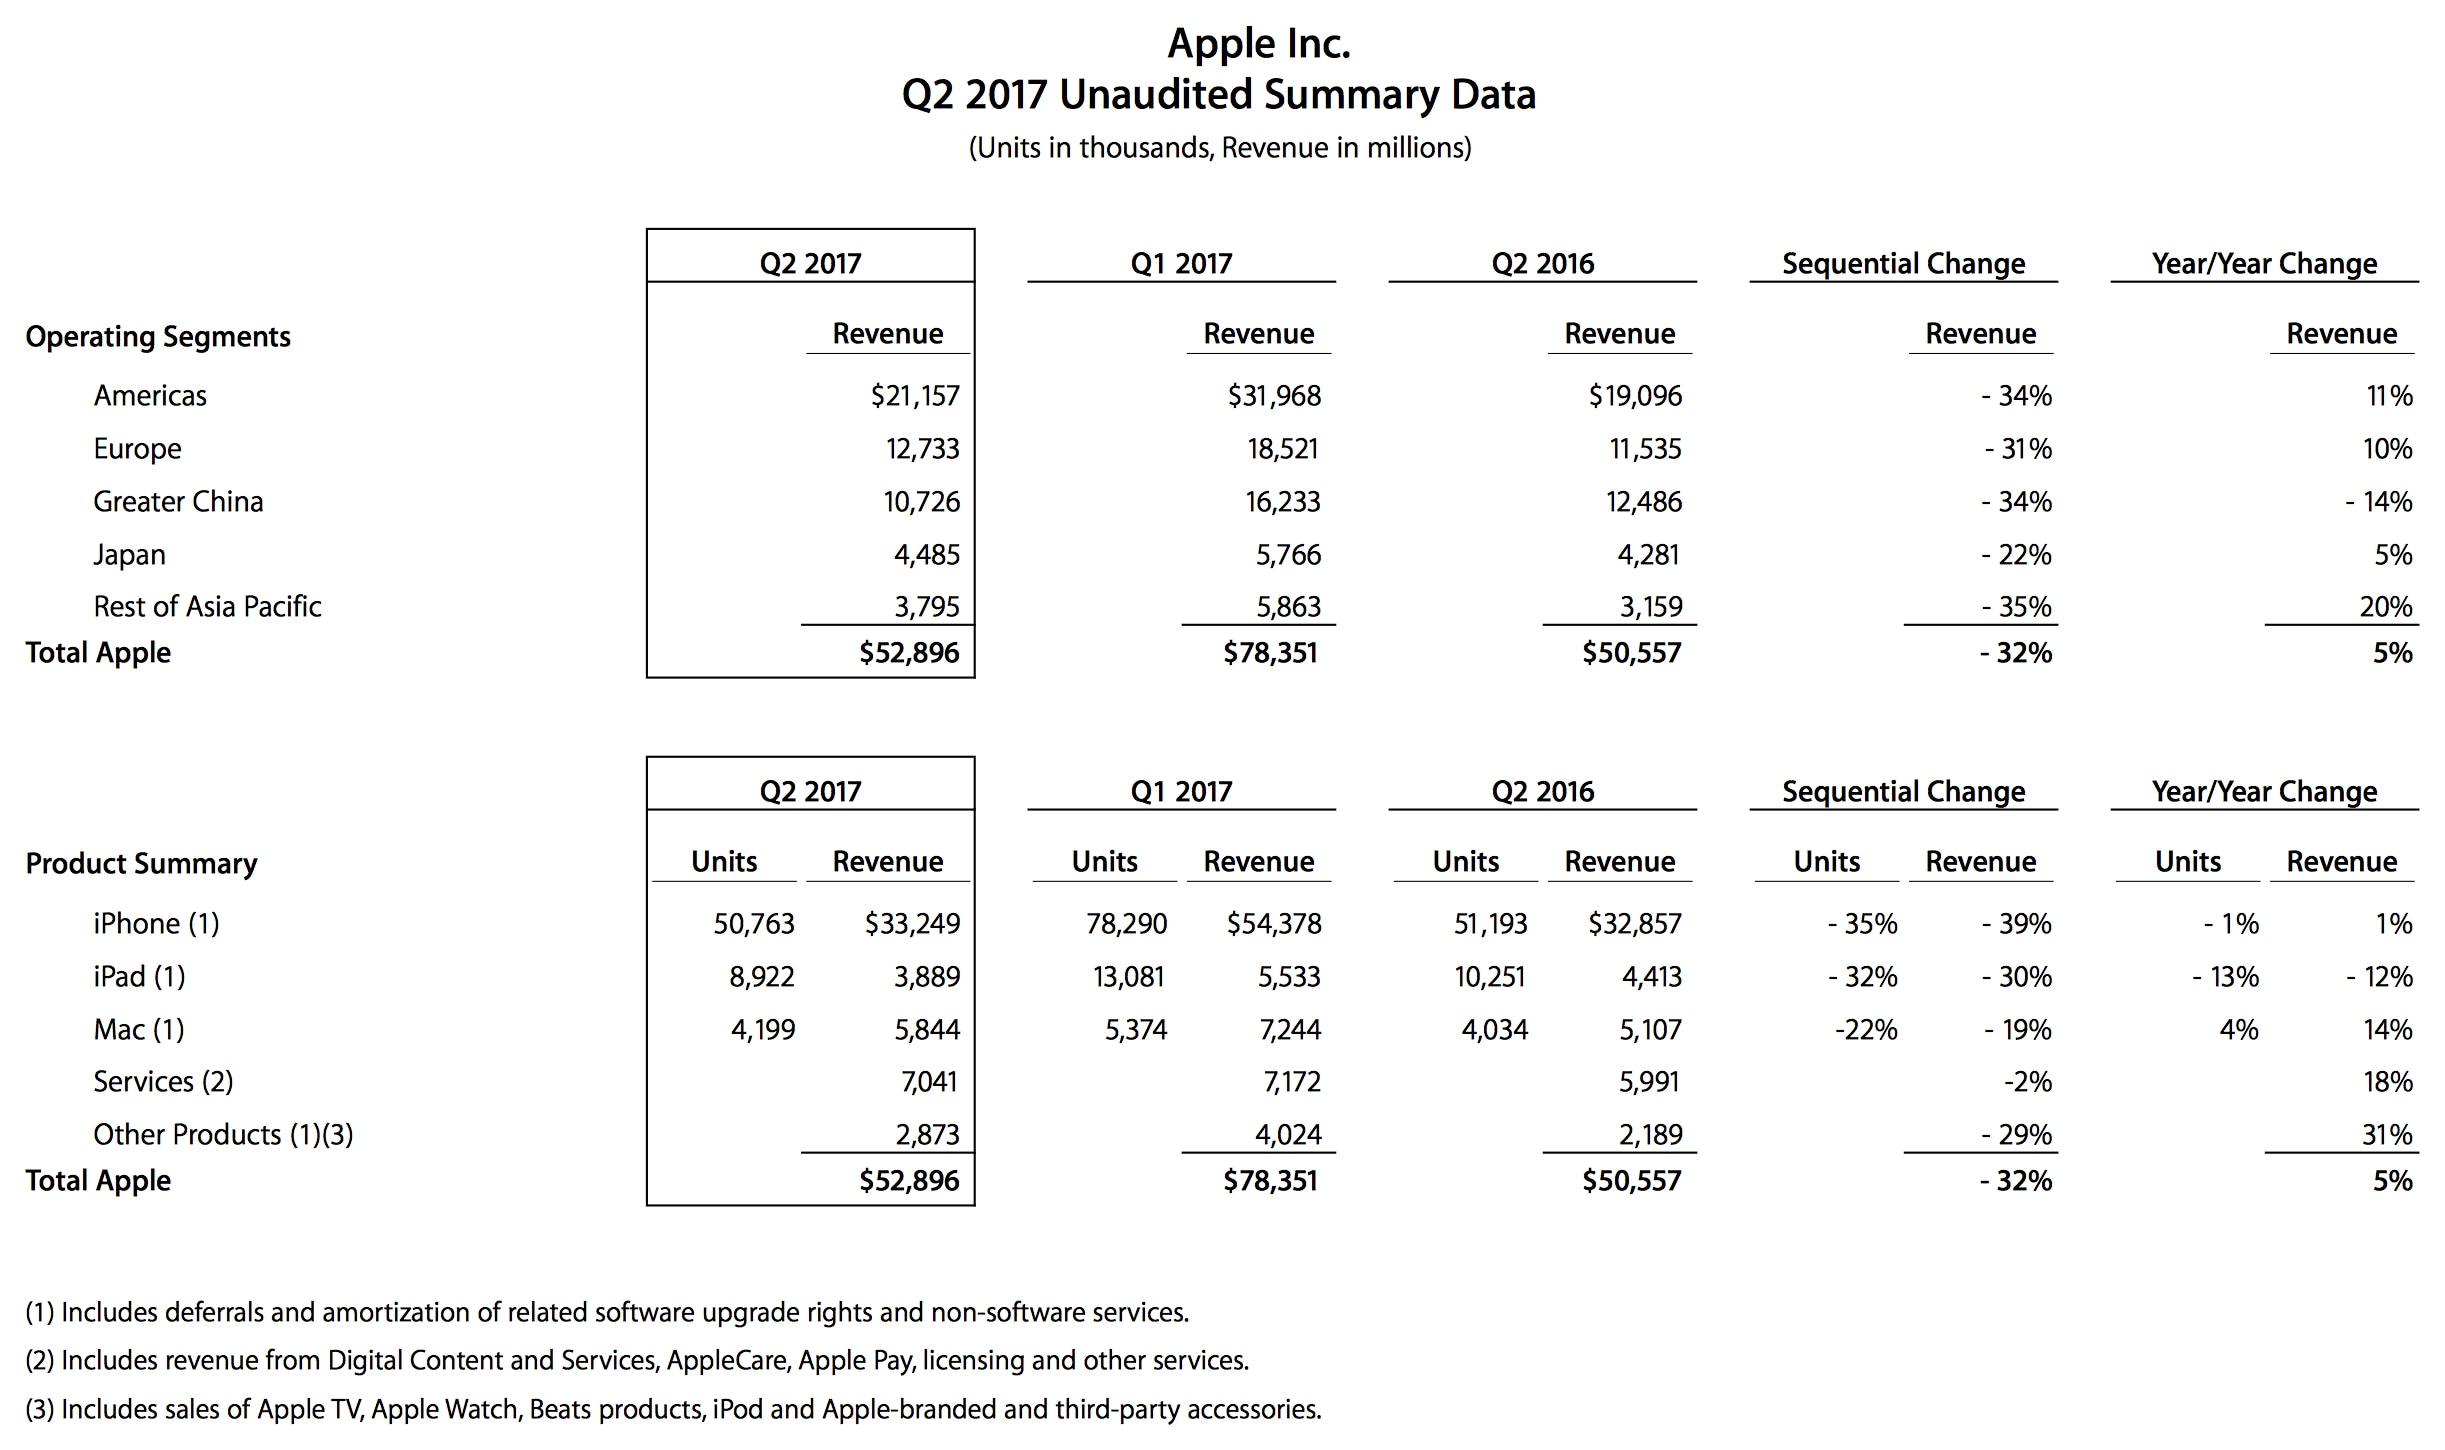 Resumo dos números da Apple no Q2 2017